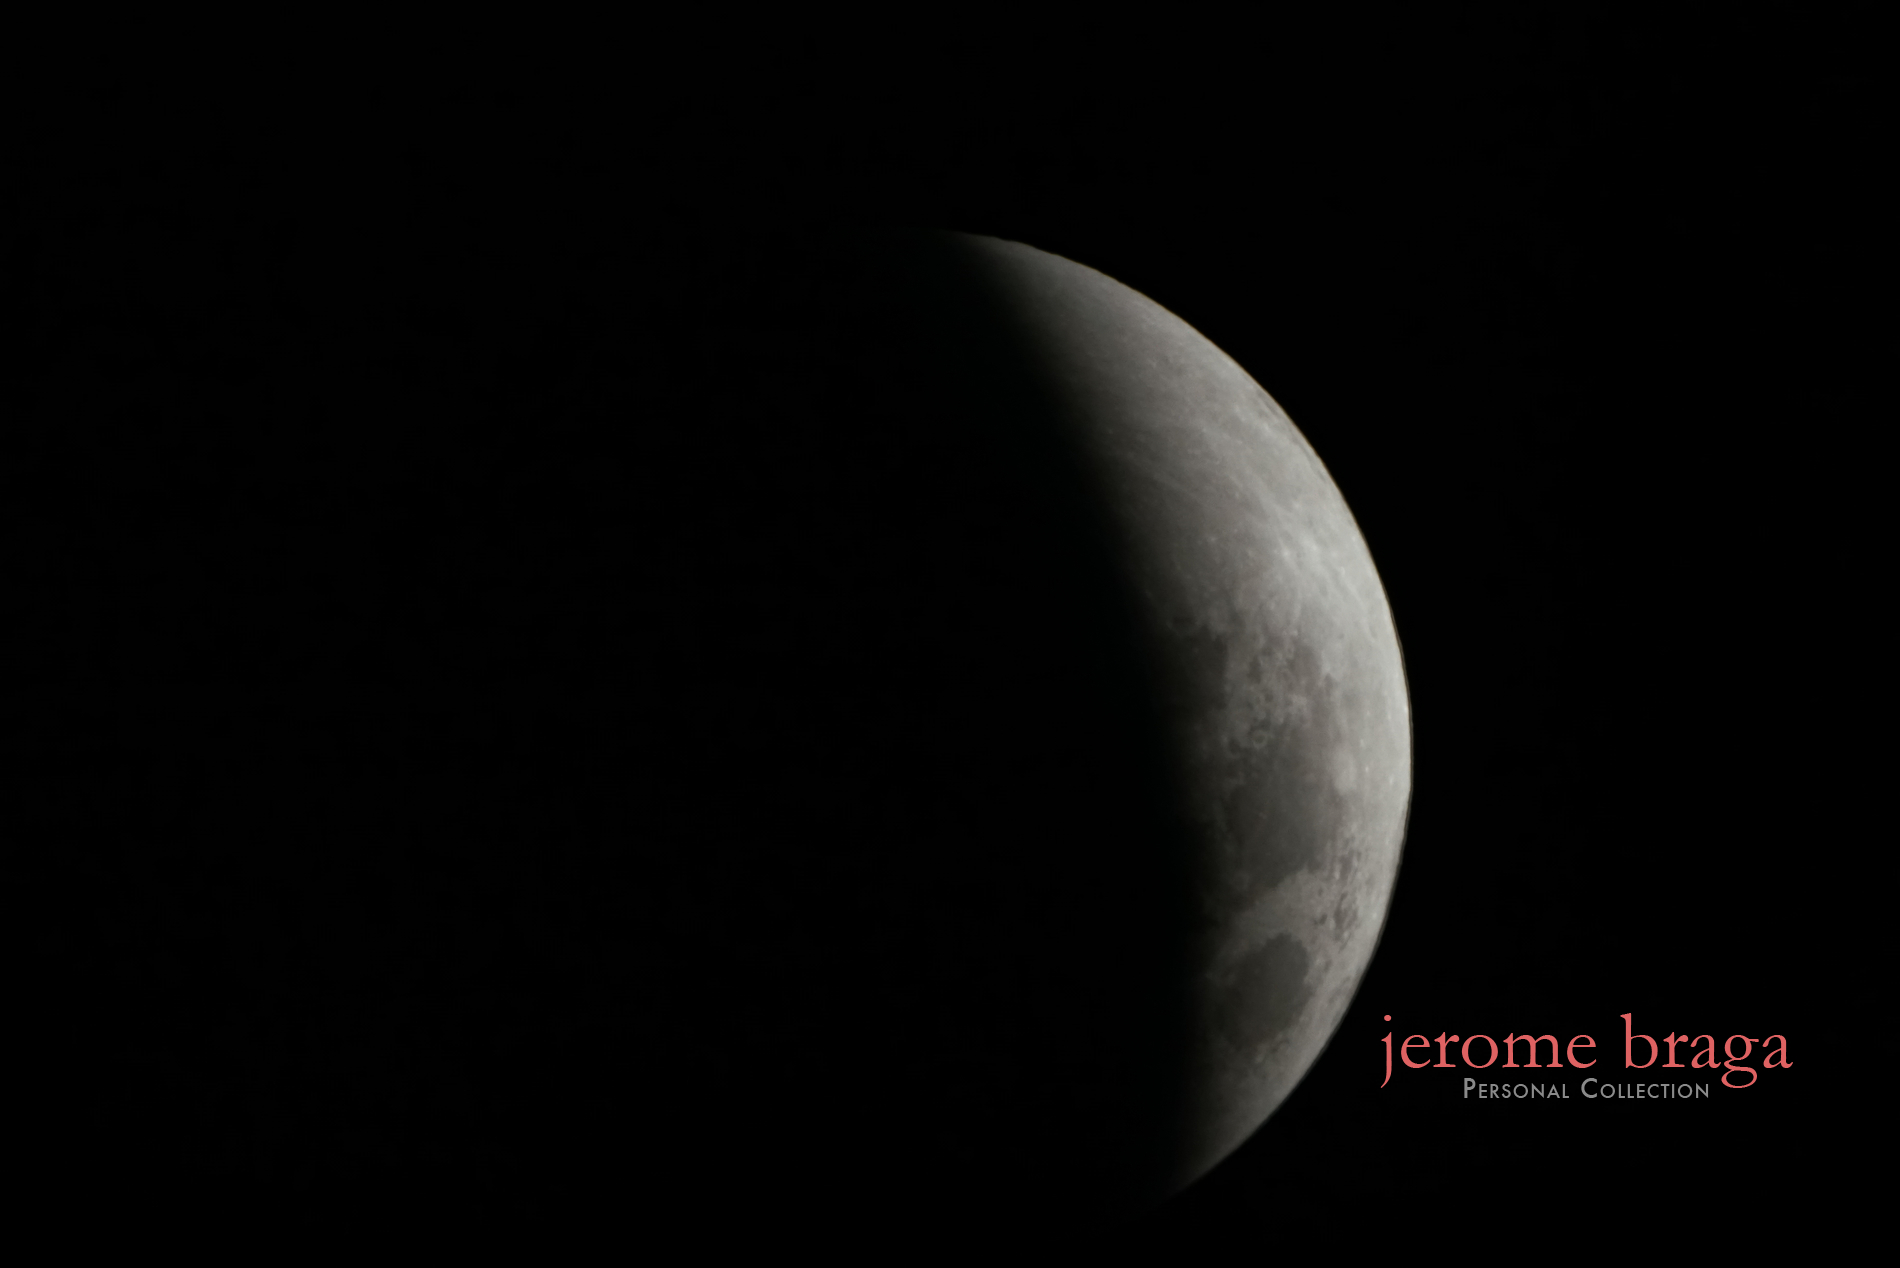 Supermoon_Jerome_Braga_0019